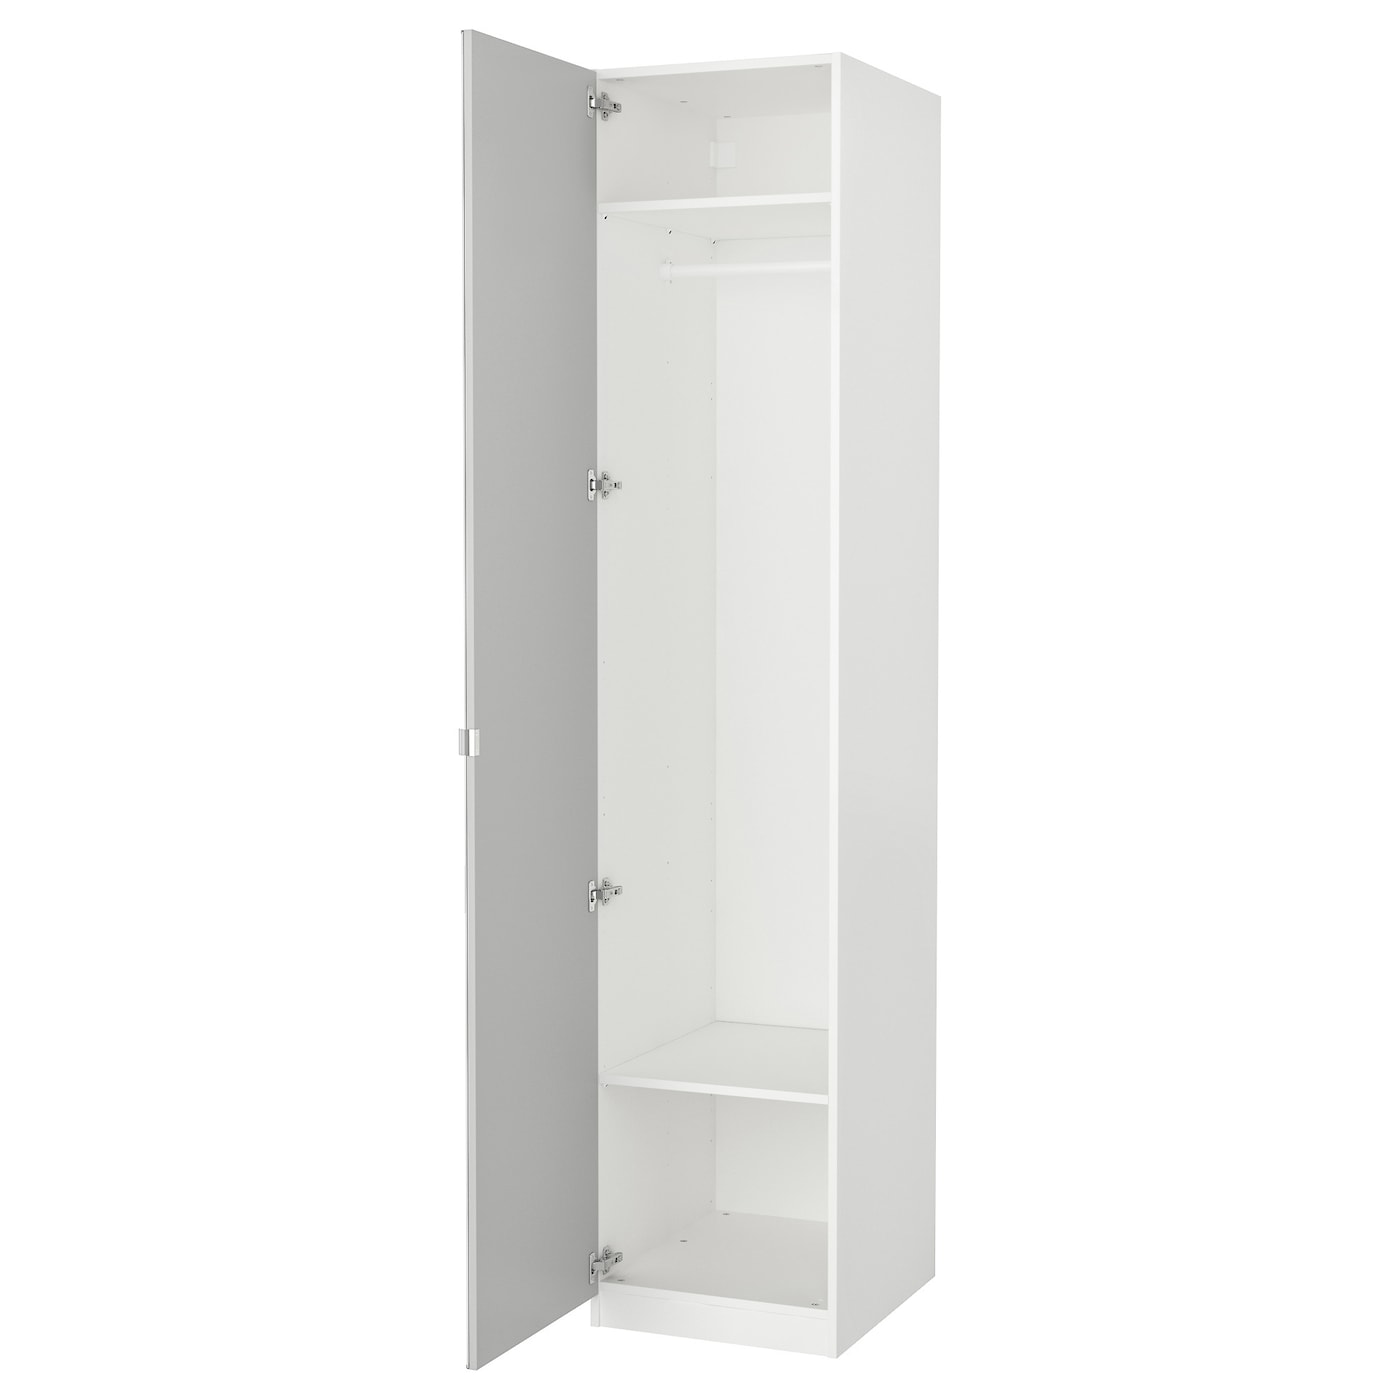 pax wardrobe white vikedal mirror glass 50x60x236 cm ikea. Black Bedroom Furniture Sets. Home Design Ideas